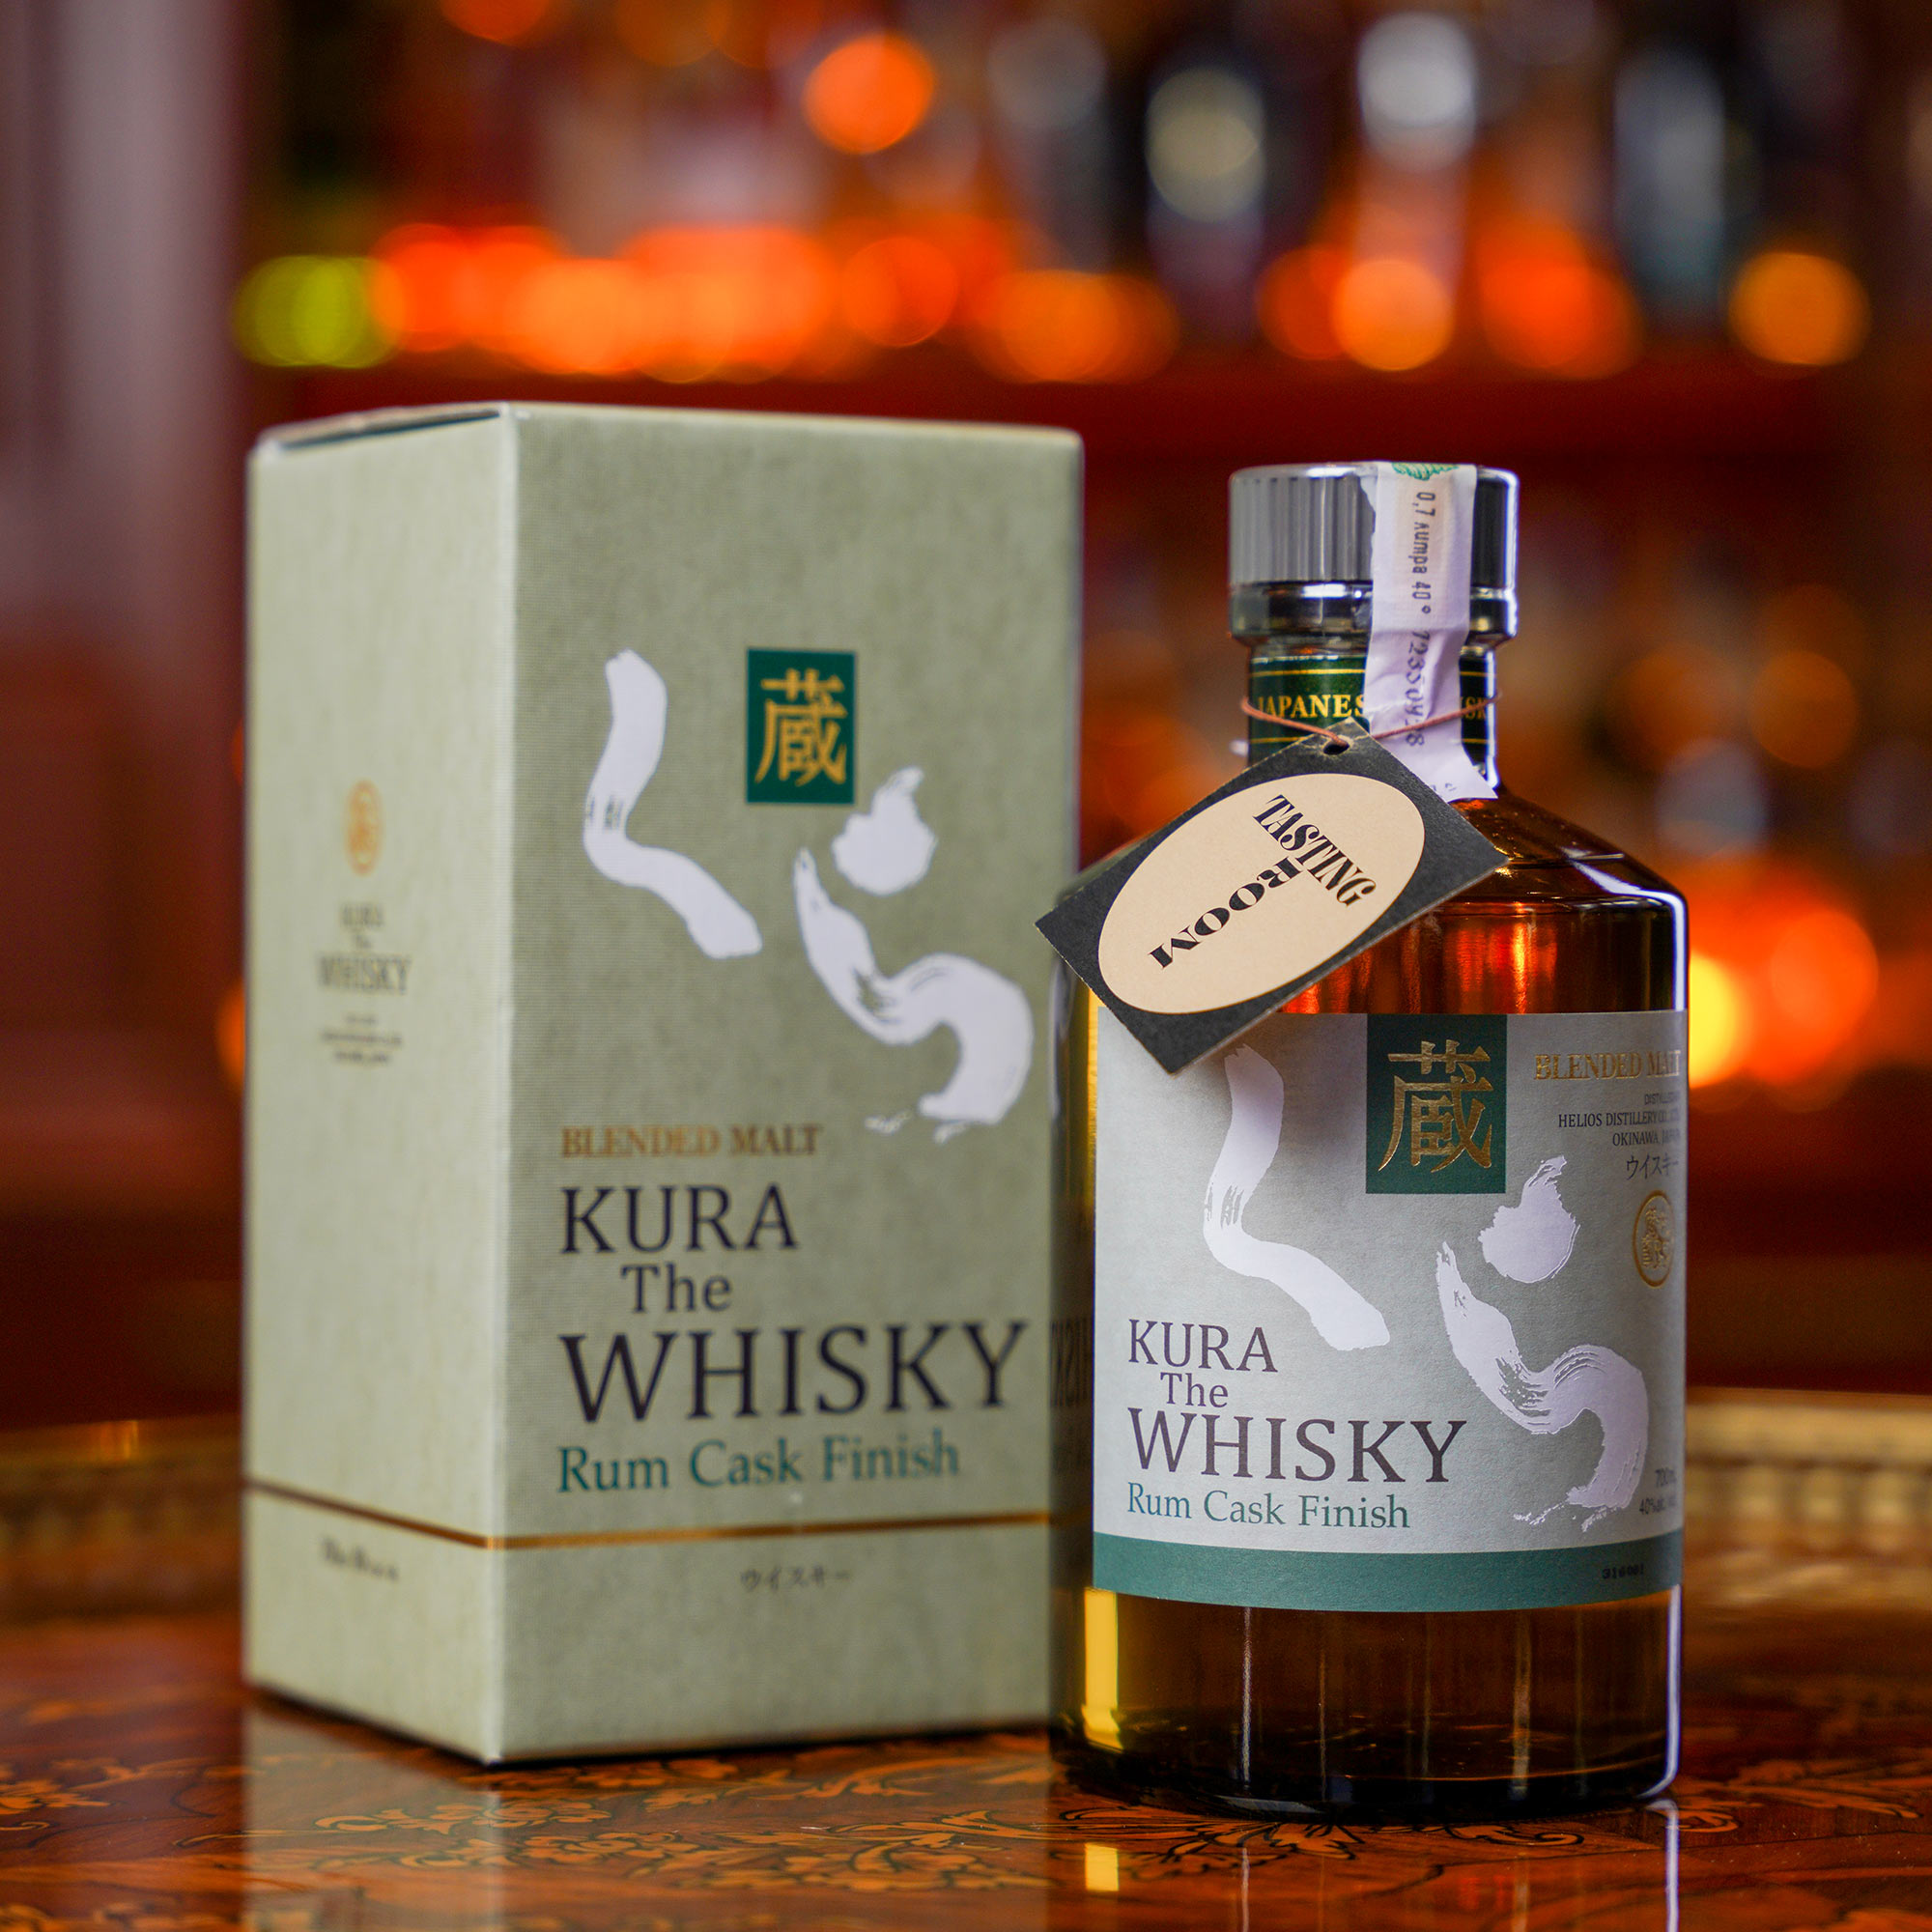 Kura The Whisky-Rum Cask Finish /Кура Дъ Уиски - Ром Каск Финиш